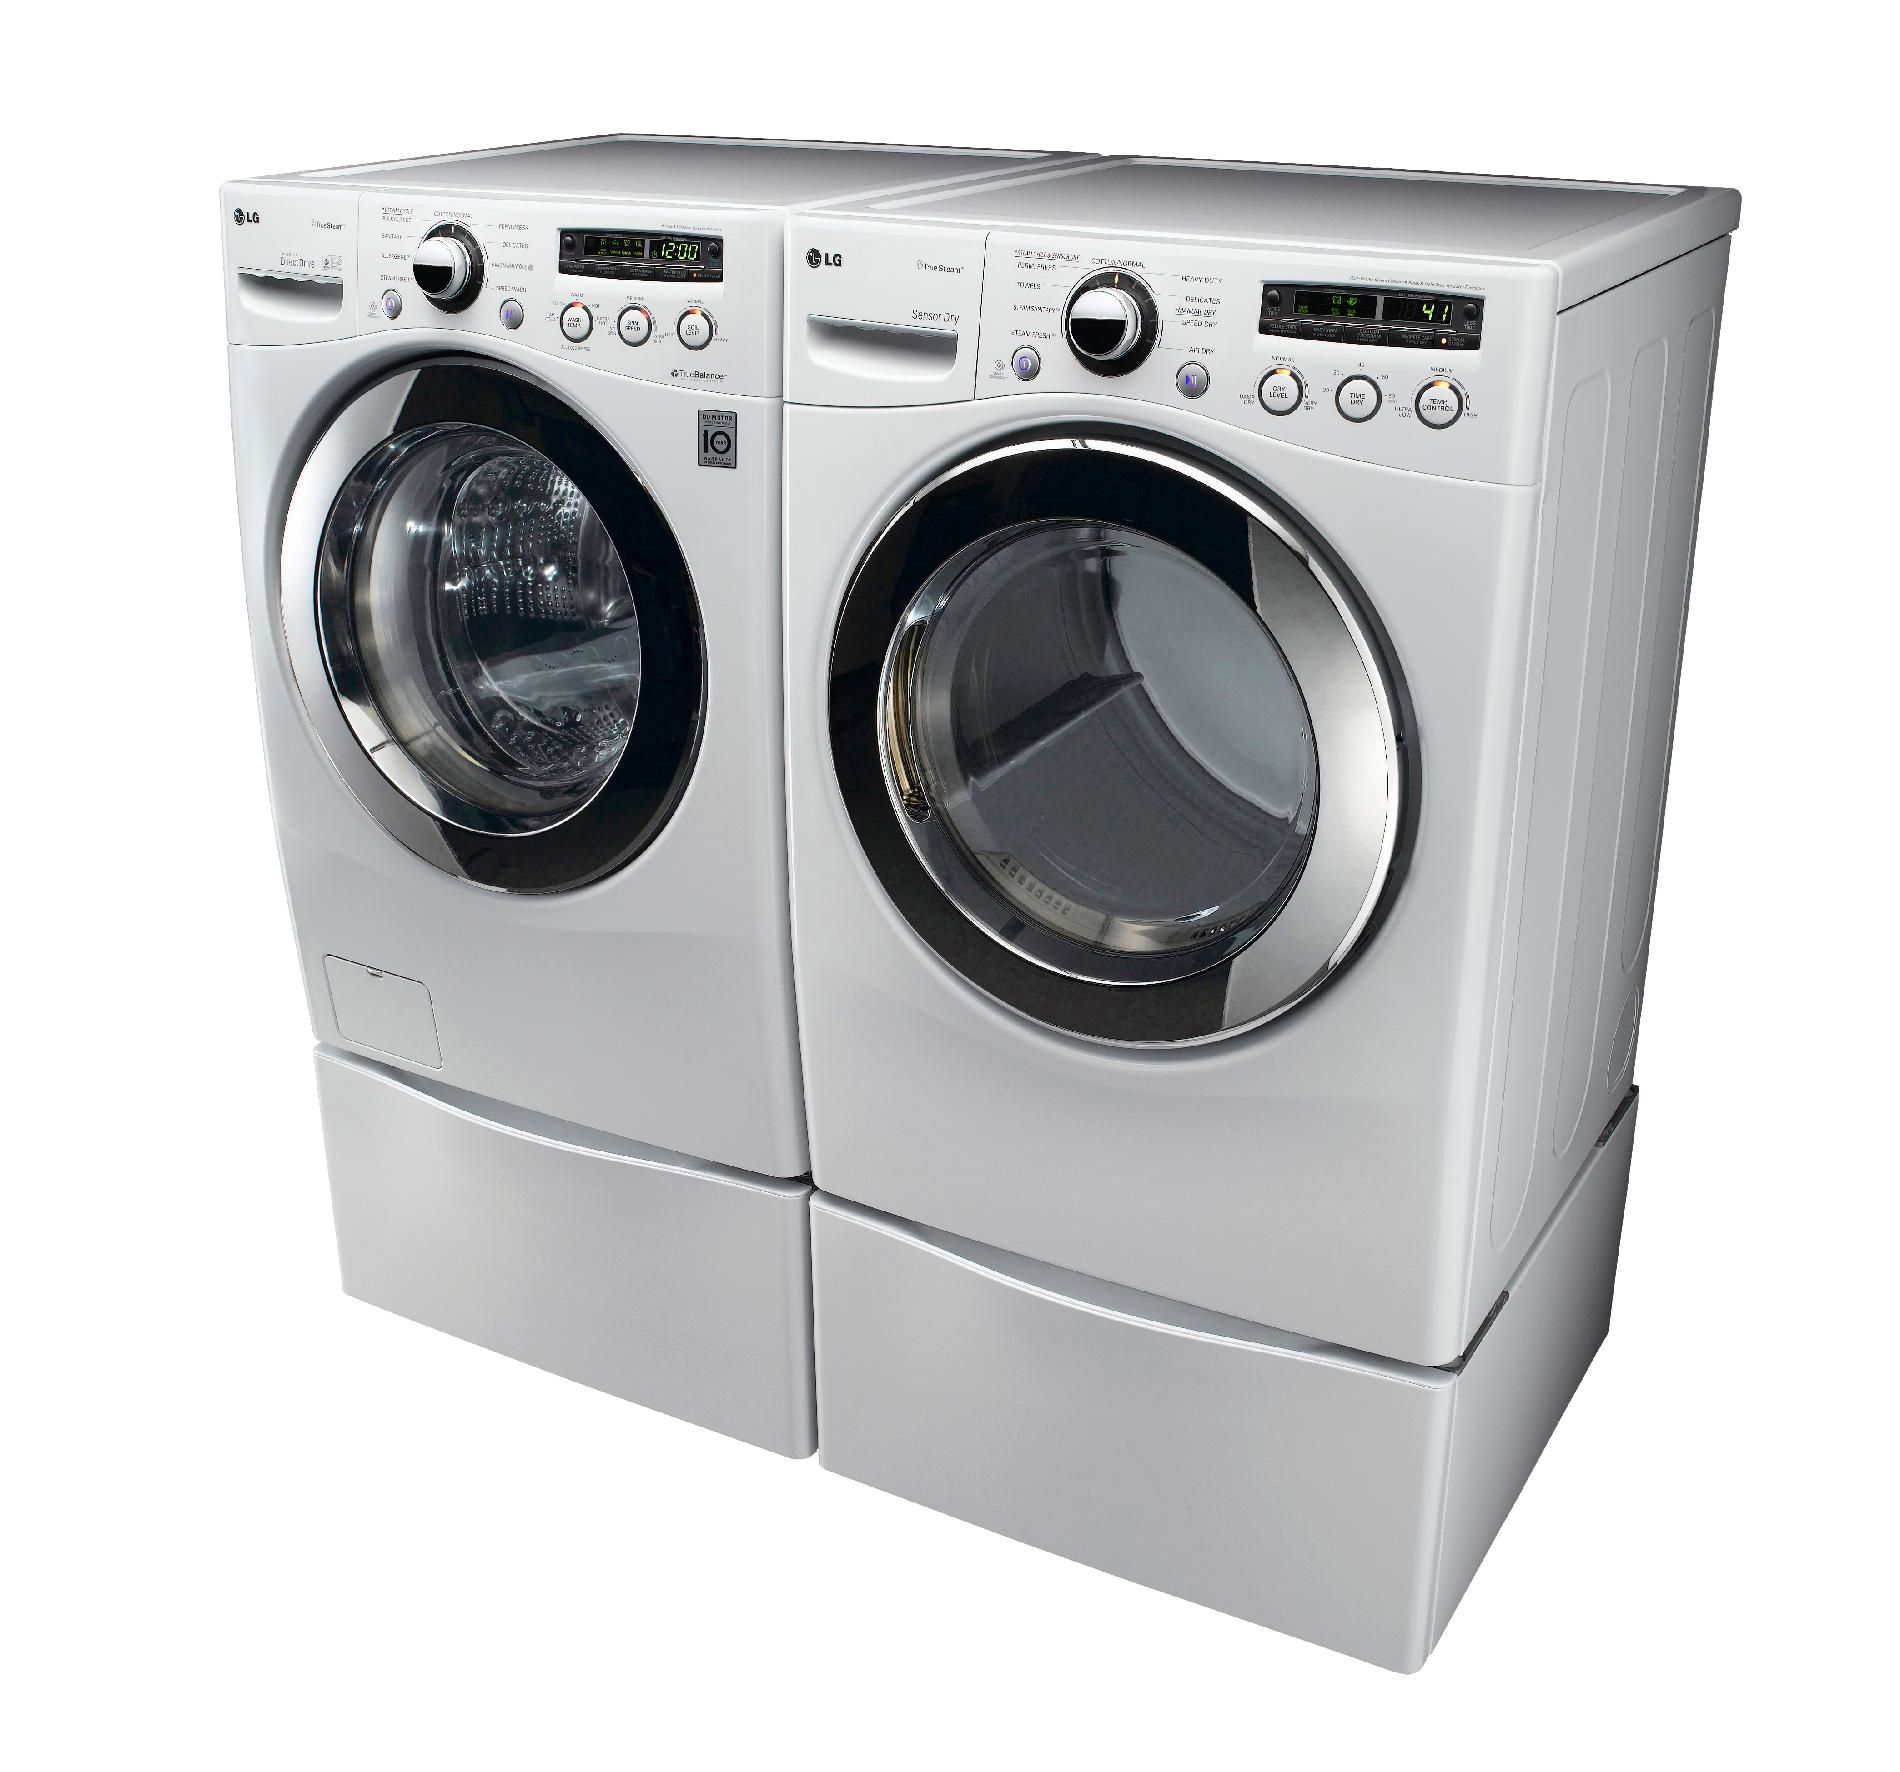 LG 7.3 cu. ft. Gas Dryer - White